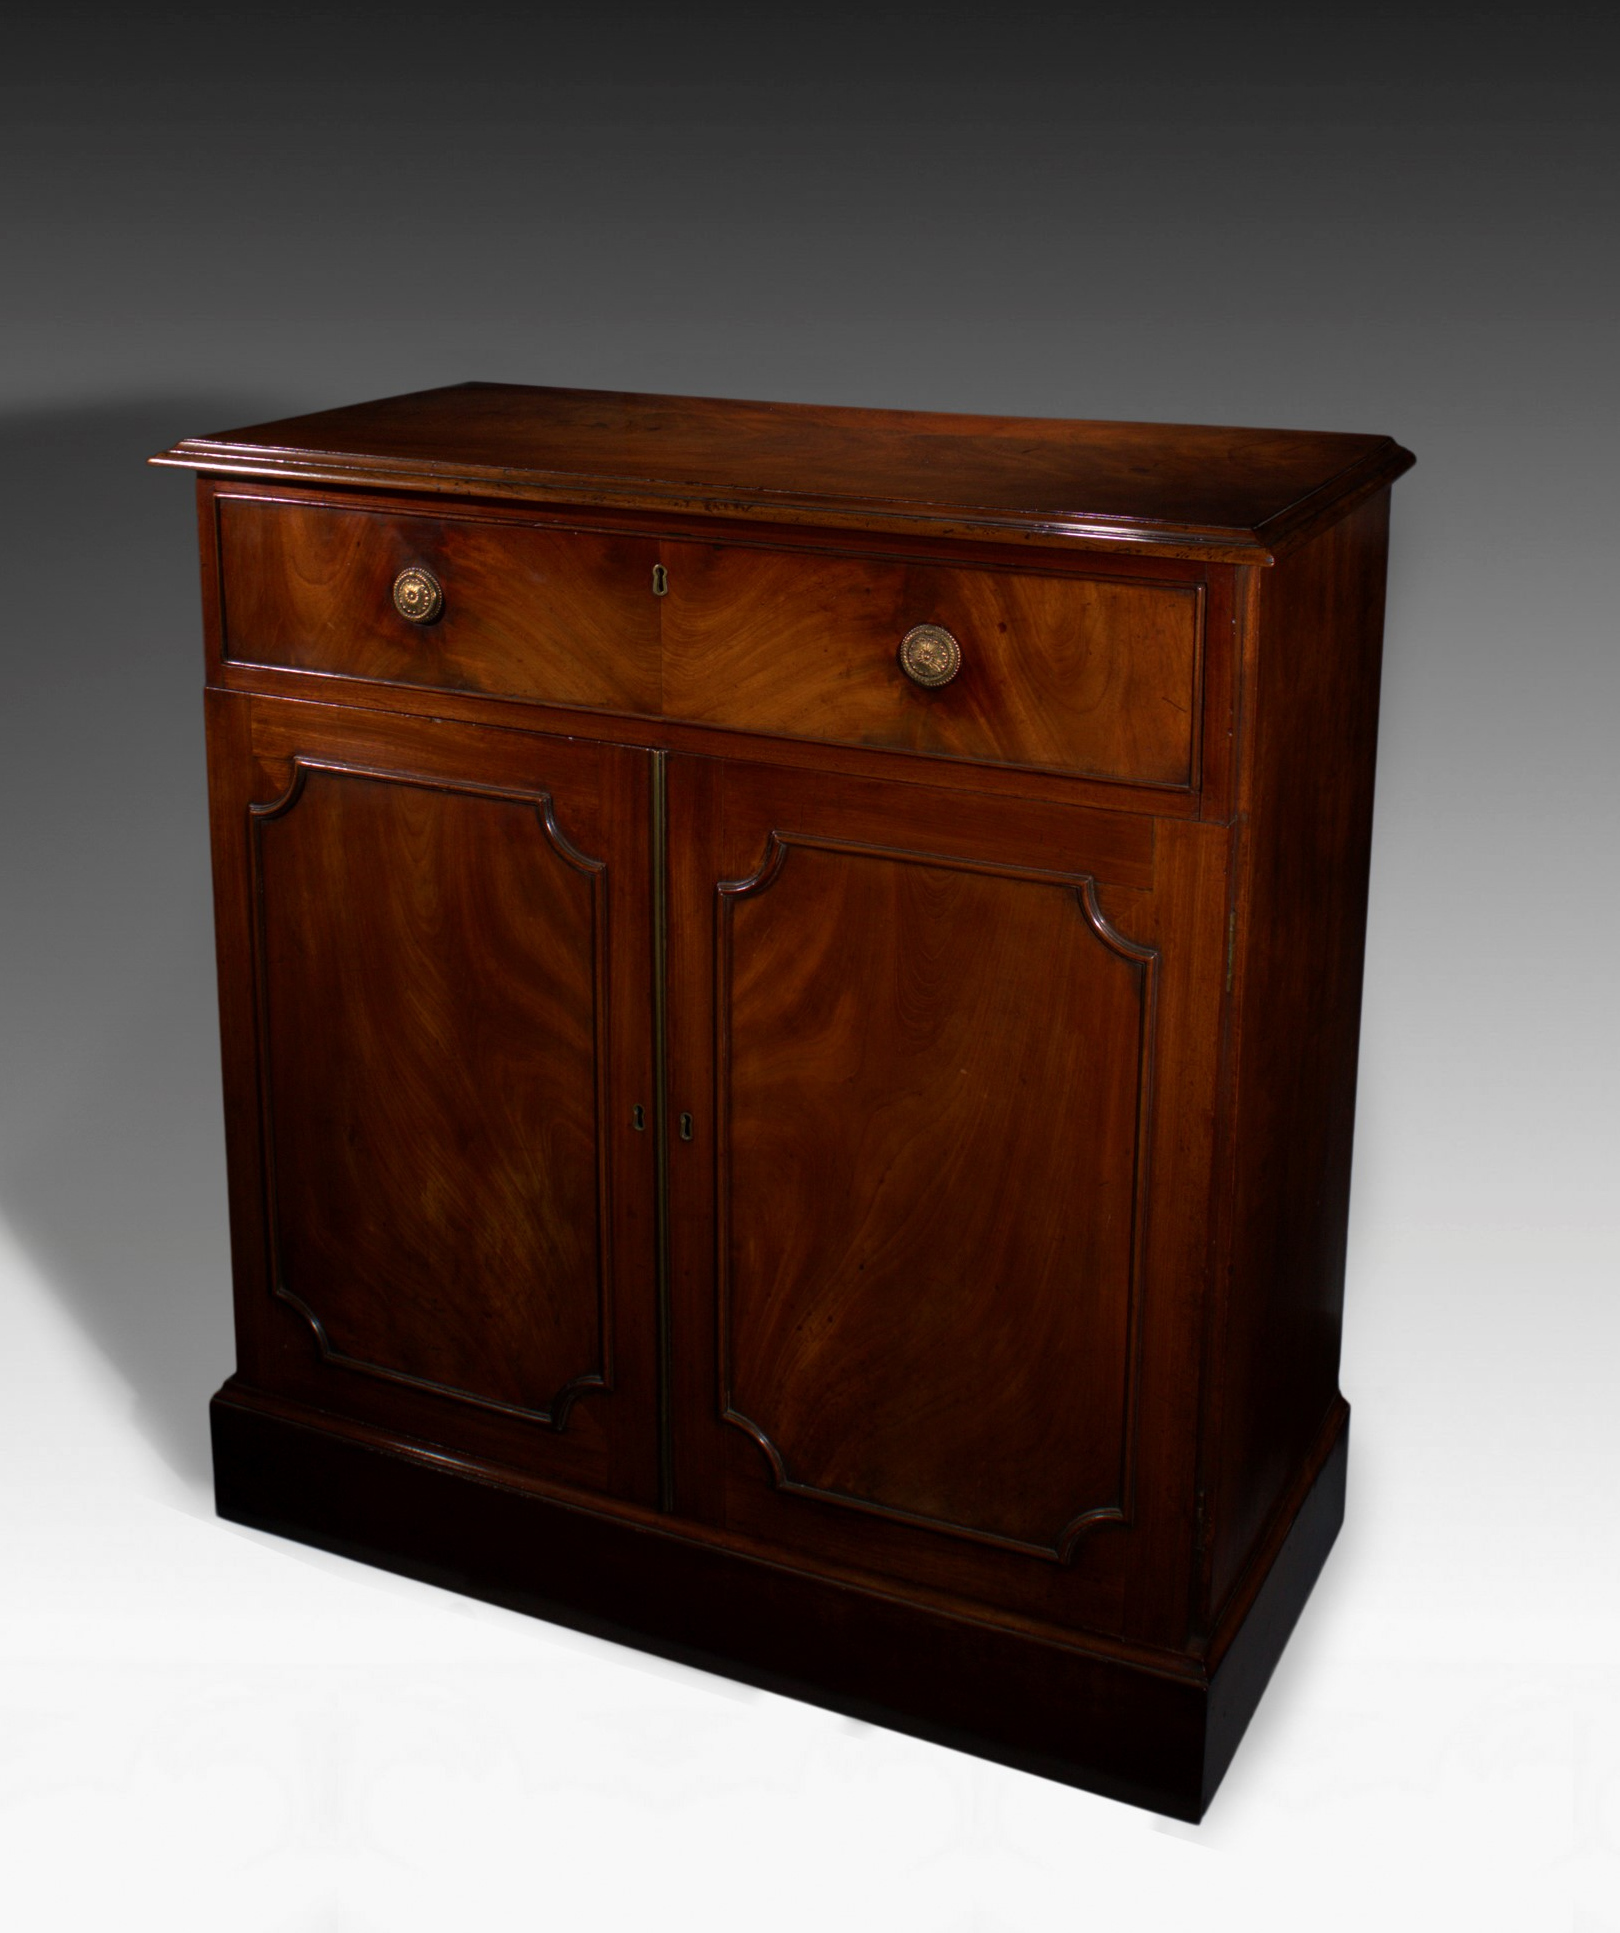 Mahogany Cabinets: ANTIQUE GEORGE III MAHOGANY SIDE CABINET WITH CELLARET DRAWER